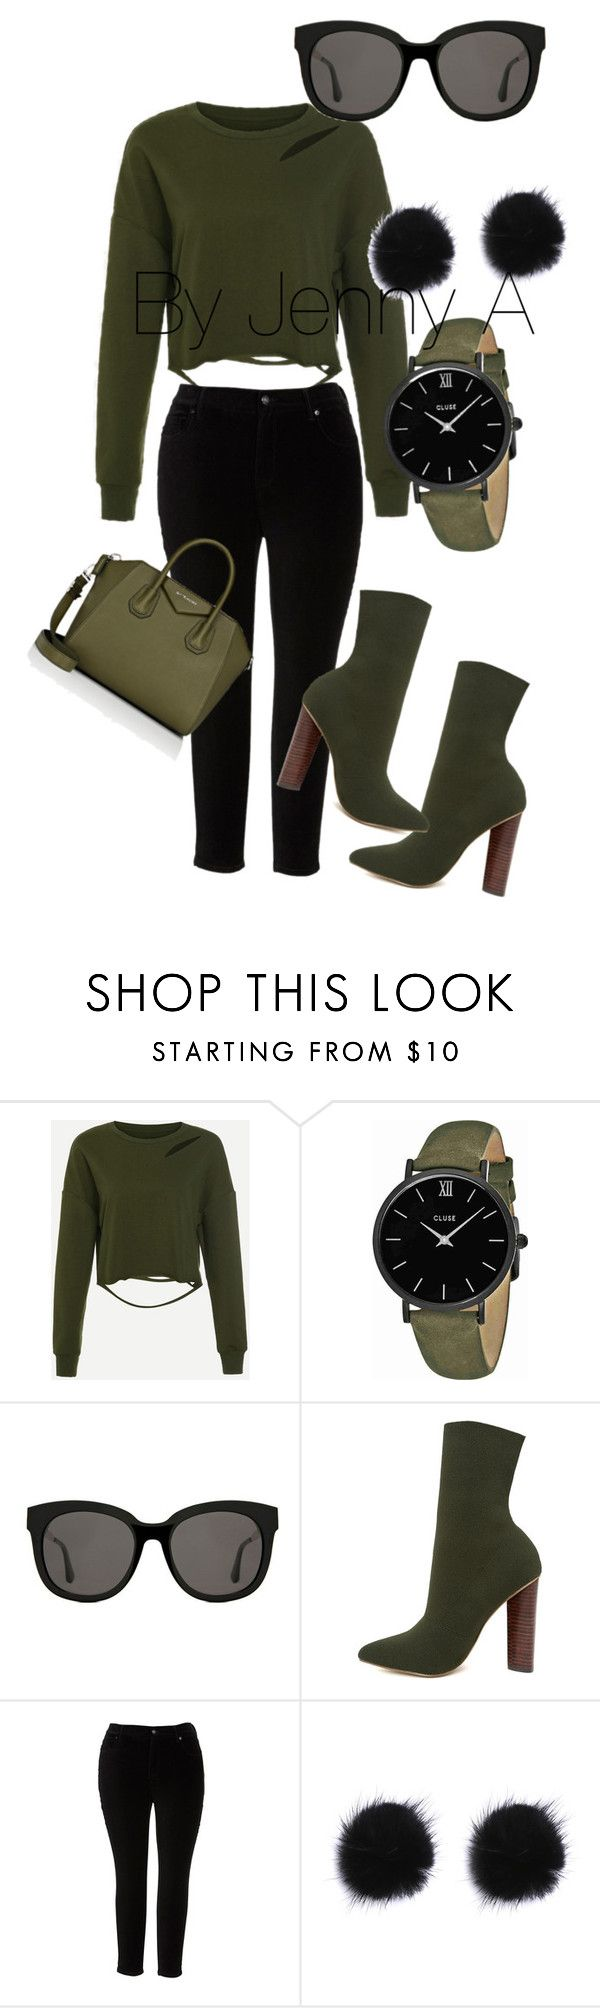 """""""Olive you"""" by jen-amaya ❤ liked on Polyvore featuring CLUSE, Gentle Monster, Steve Madden, Melissa McCarthy Seven7, Givenchy and plus size clothing"""